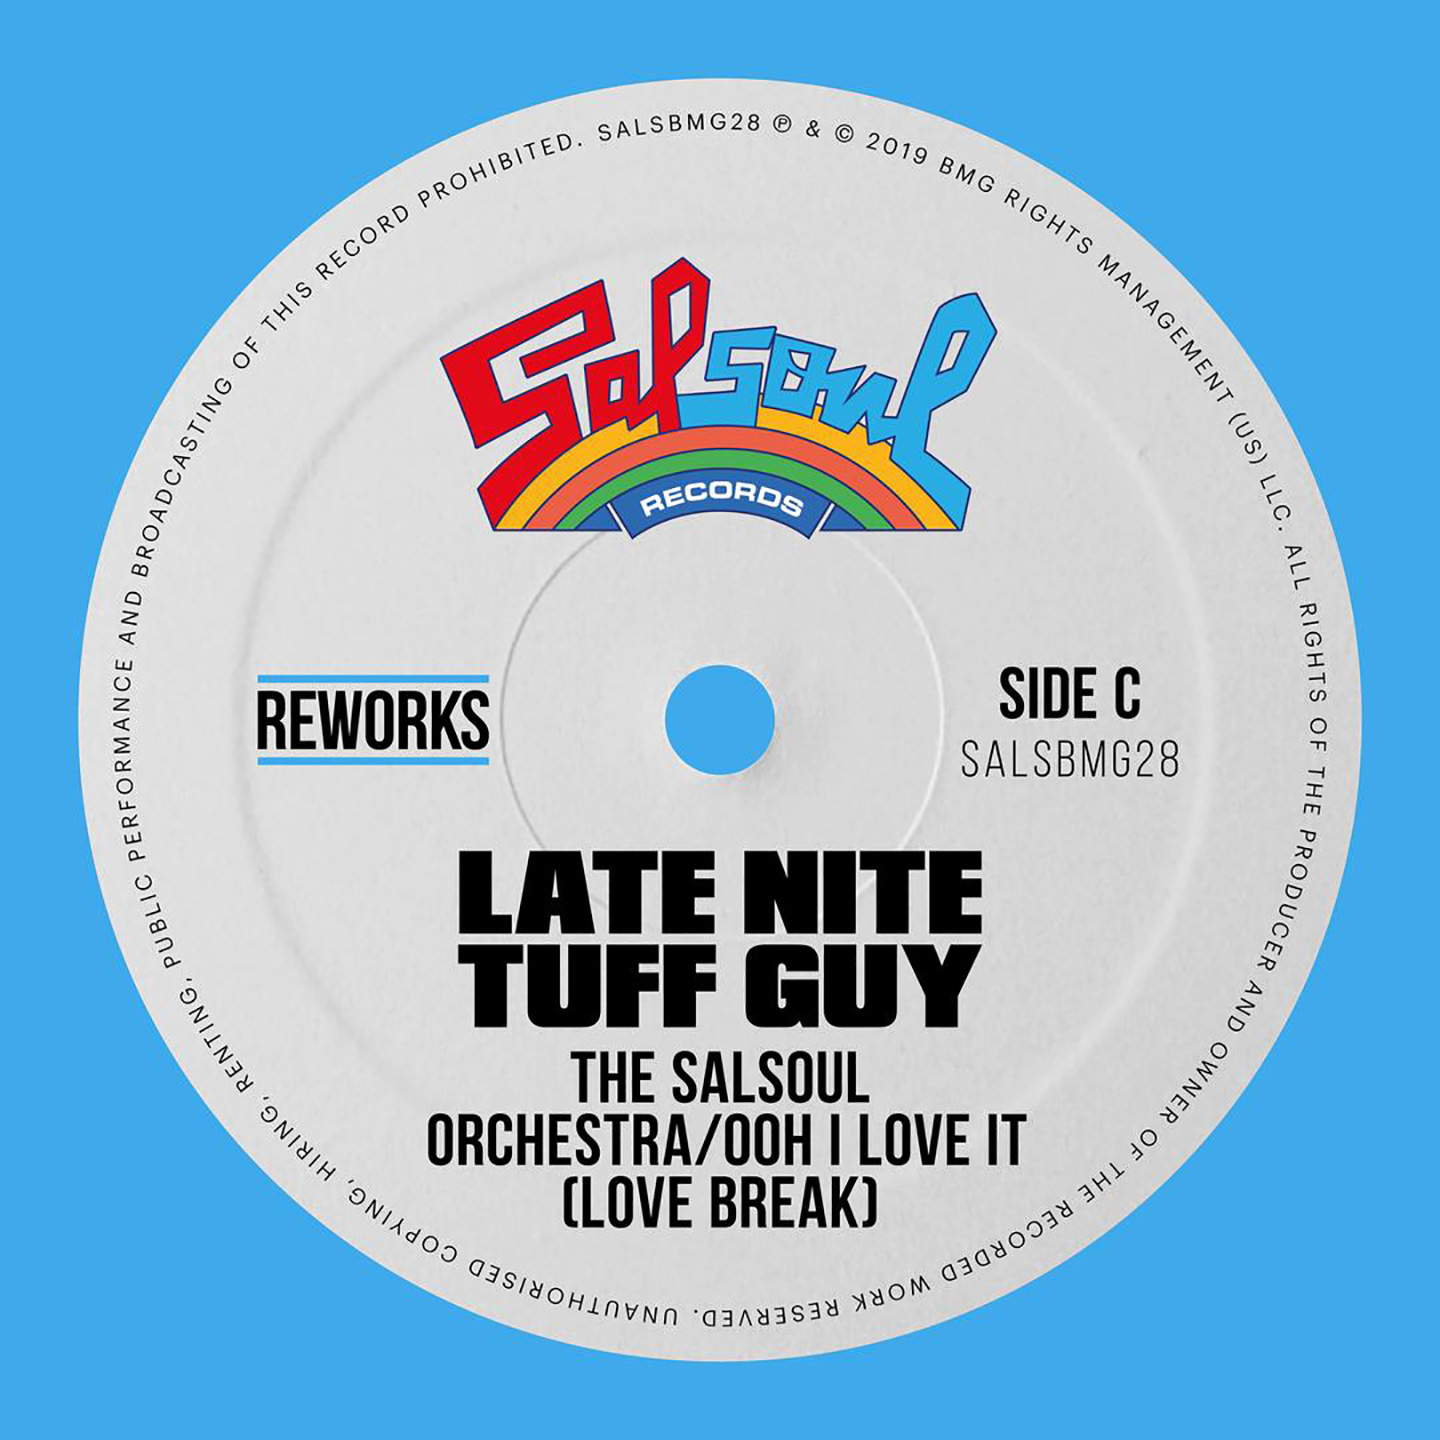 Late Nite Tuff Guy - Ooh I love It (Love Break) Reworks